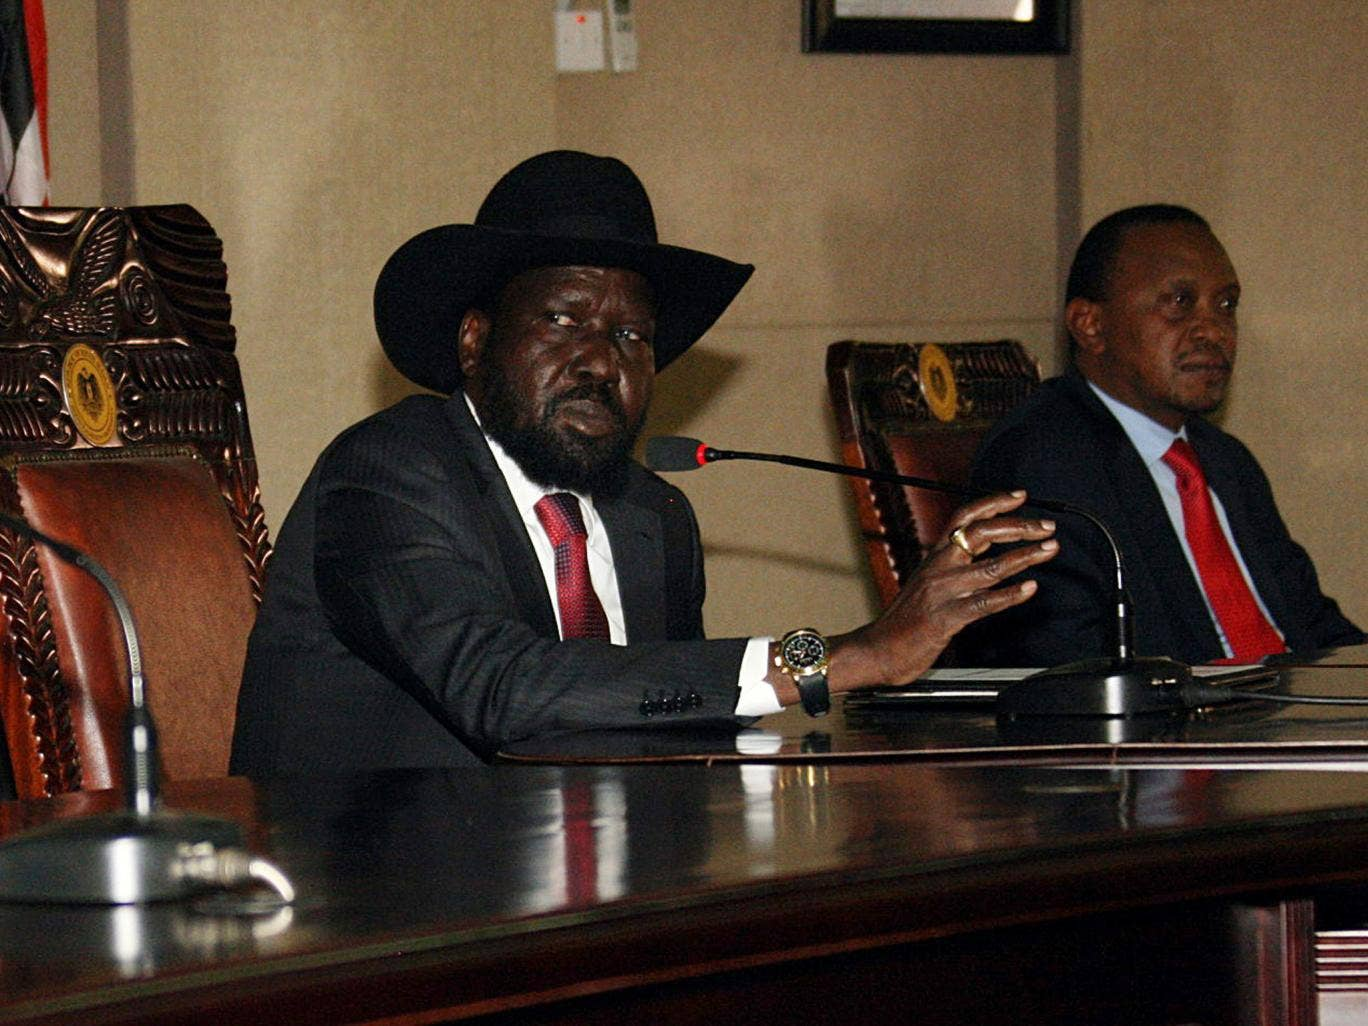 South Sudan President, Salva Kiir, left, sitting with his Kenyan counterpart Uhuru Kenyatta - South Sudan's neighbours threw their weight behind President Salva Kiir, saying they would not accept any bid to overthrow hisdemocratically elected government